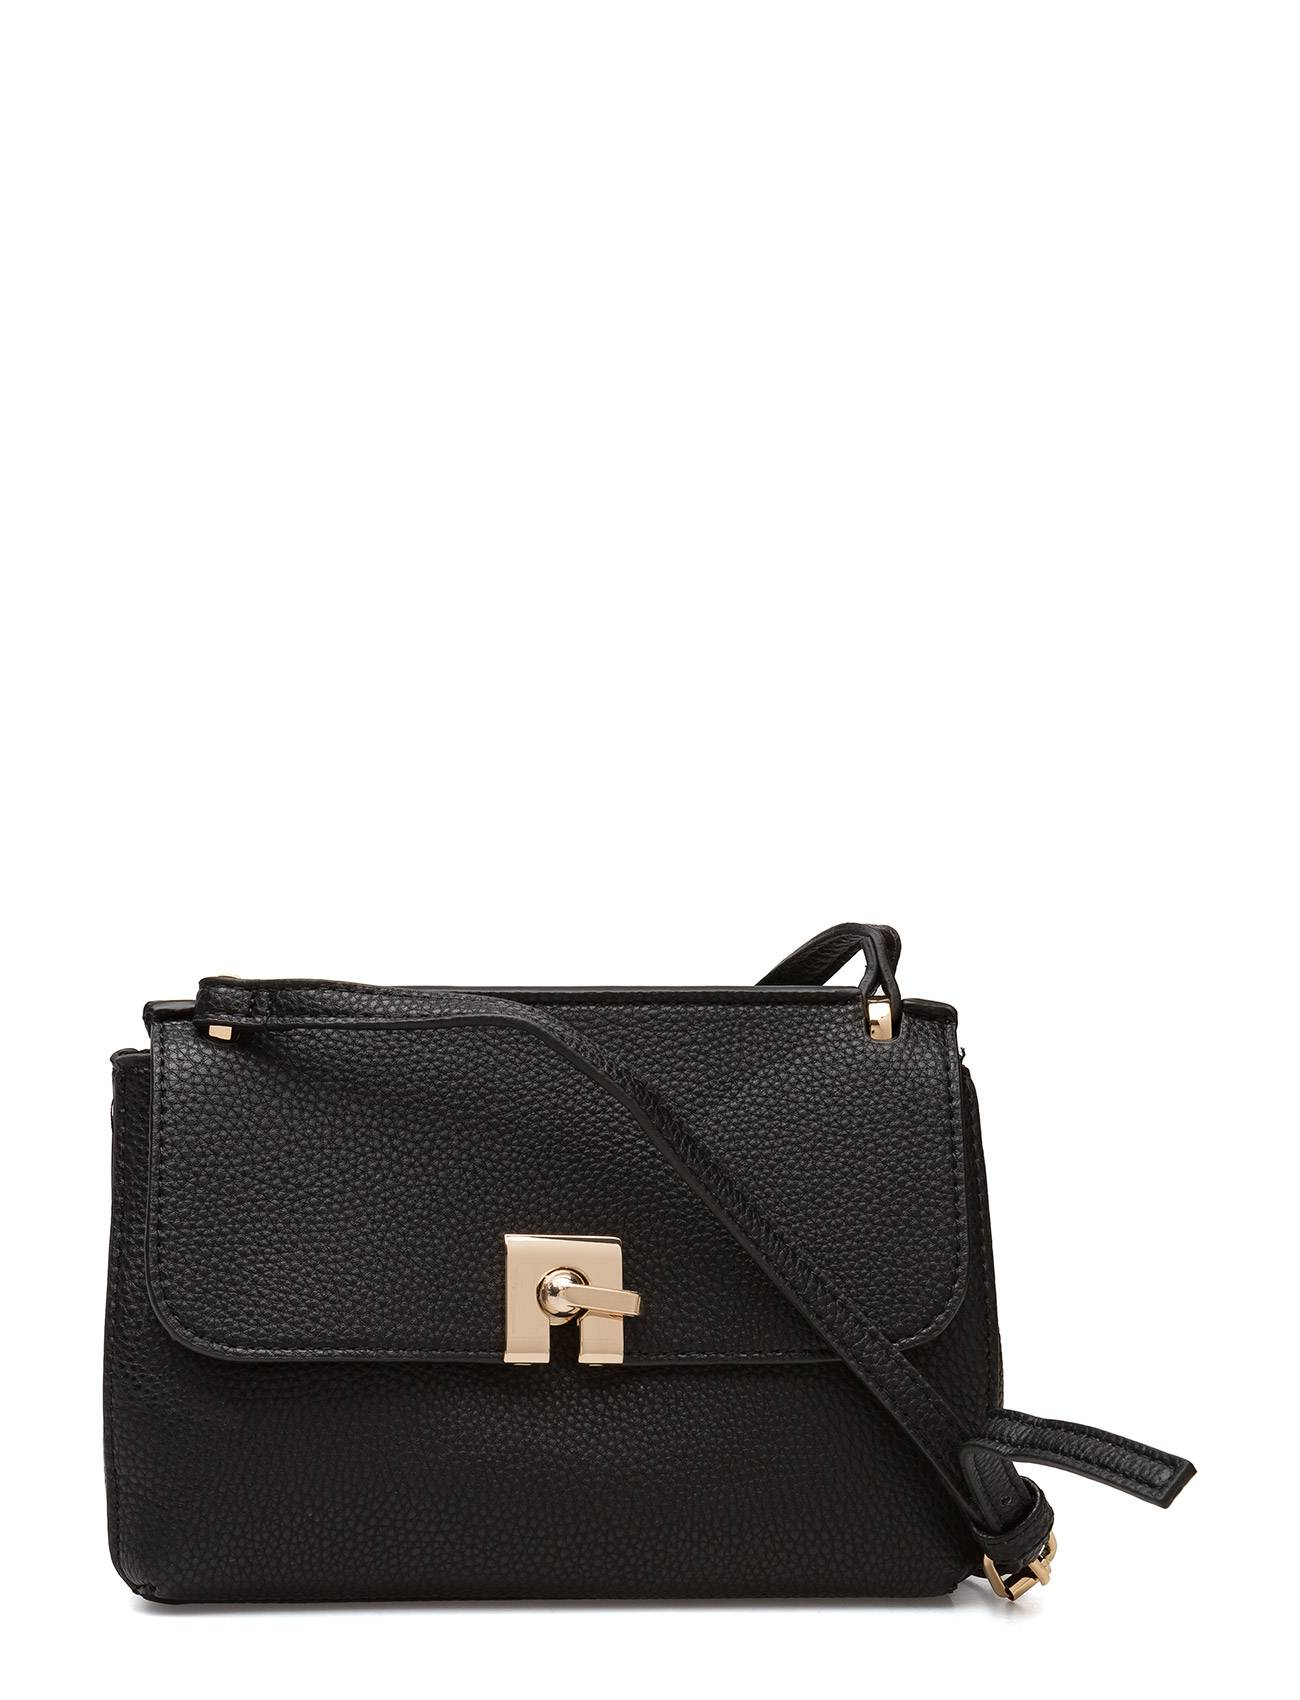 Mango Pebbled Cross-Body Bag